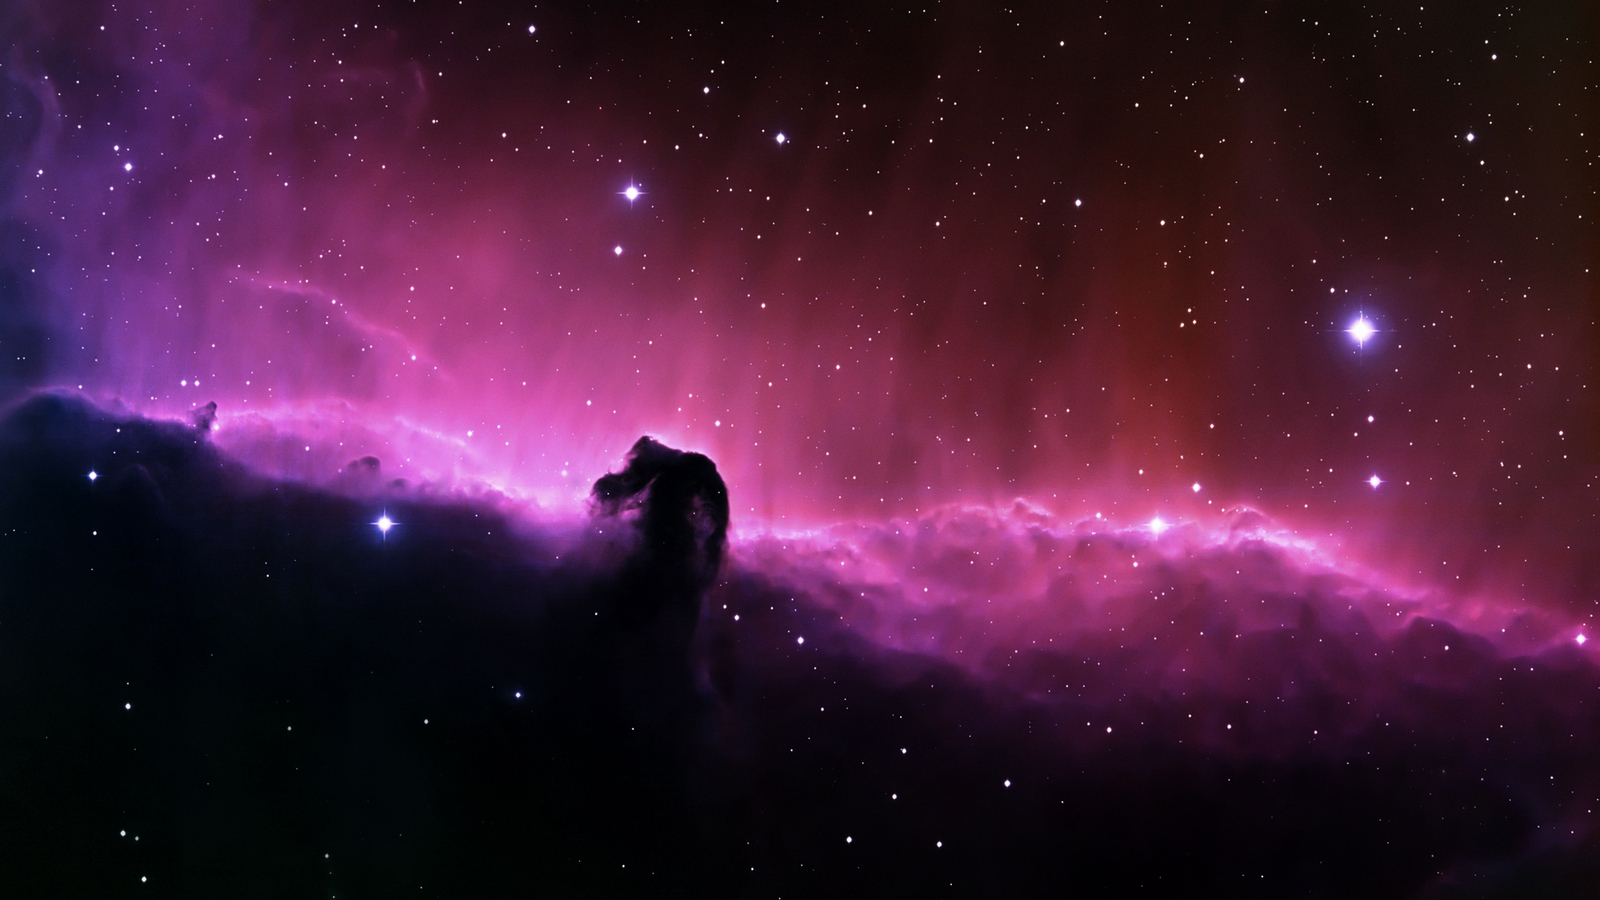 ... space desktop hd wallpaper | Free Wallpaper | Wallpapers | Themes